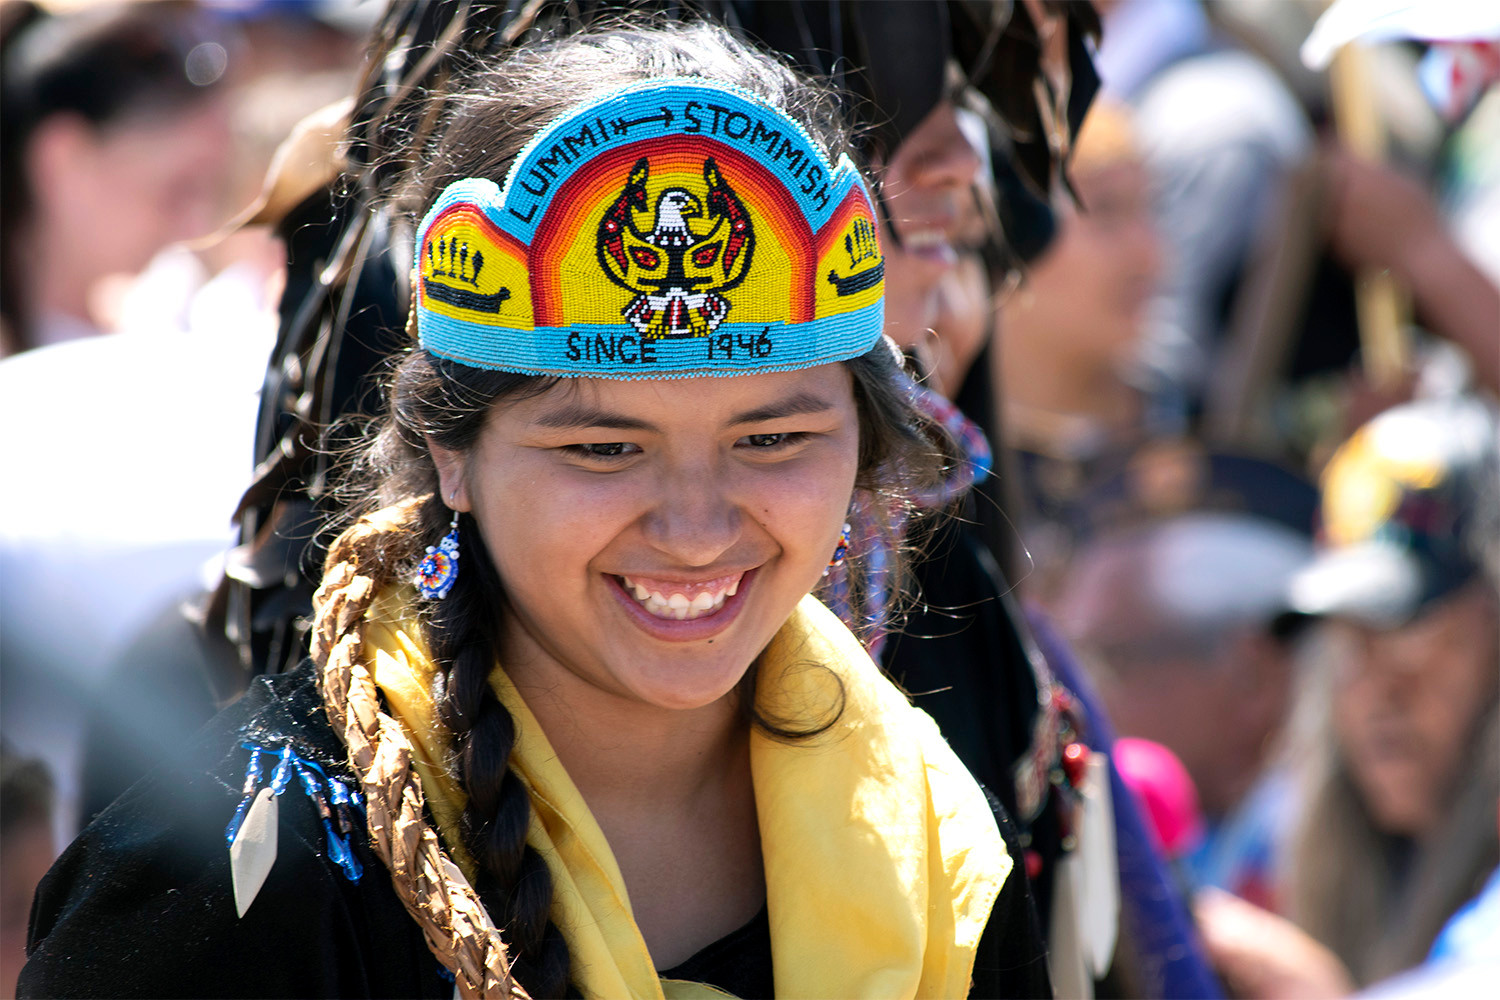 One of the 2018 Lummi Stommish Water Festival Princesses thanking veterans for their service.